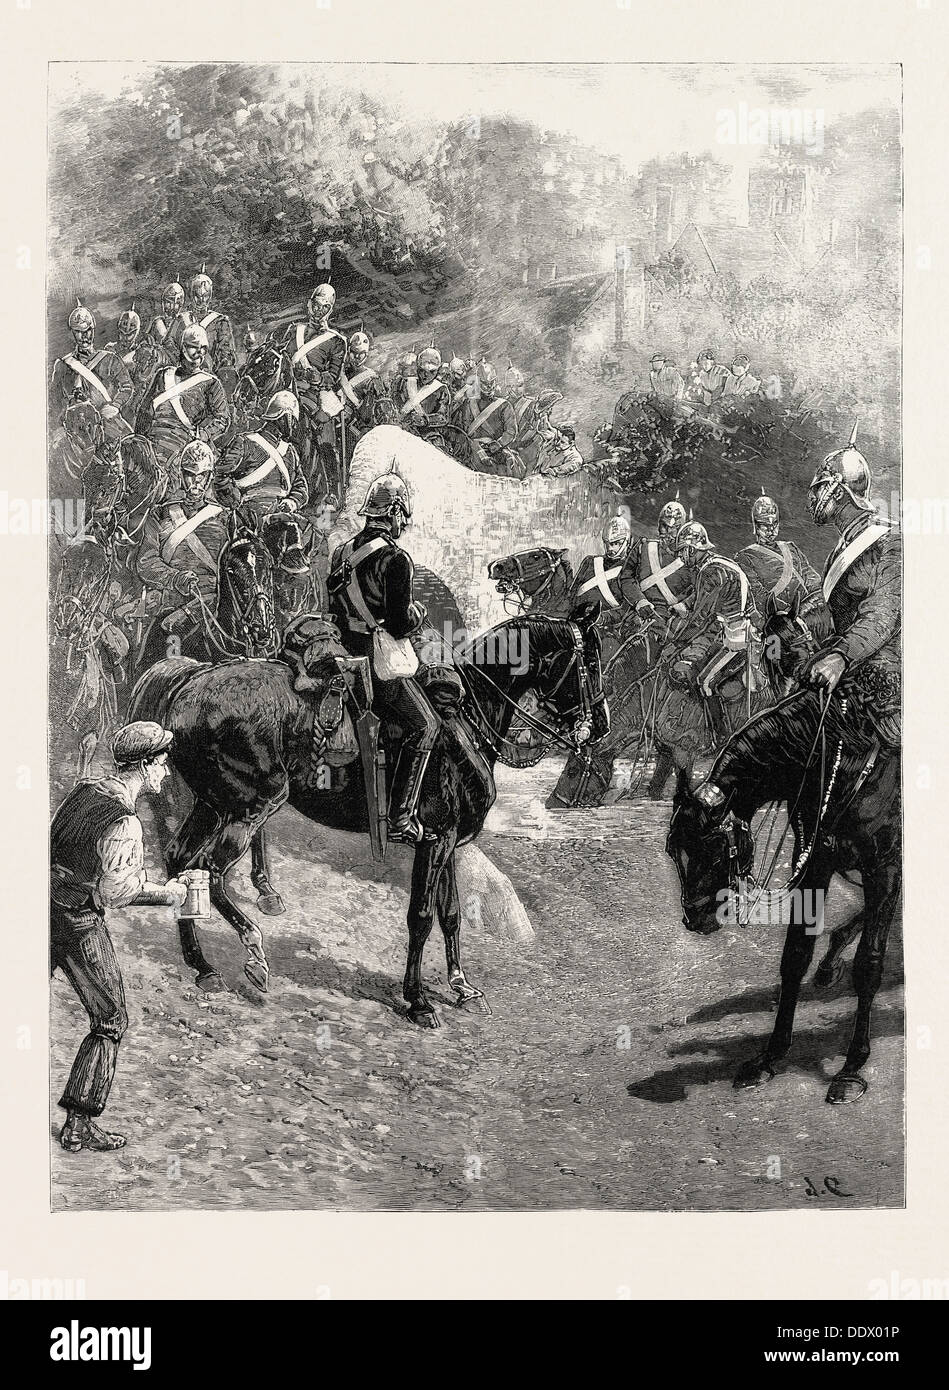 THE CAVALRY MANOEUVRES: THE GUARDS ON THE MARCH FROM ALDERSHOT TO CHURN CAMP, ARRIVING AT A WATERING PLACE, 1890 Stock Photo